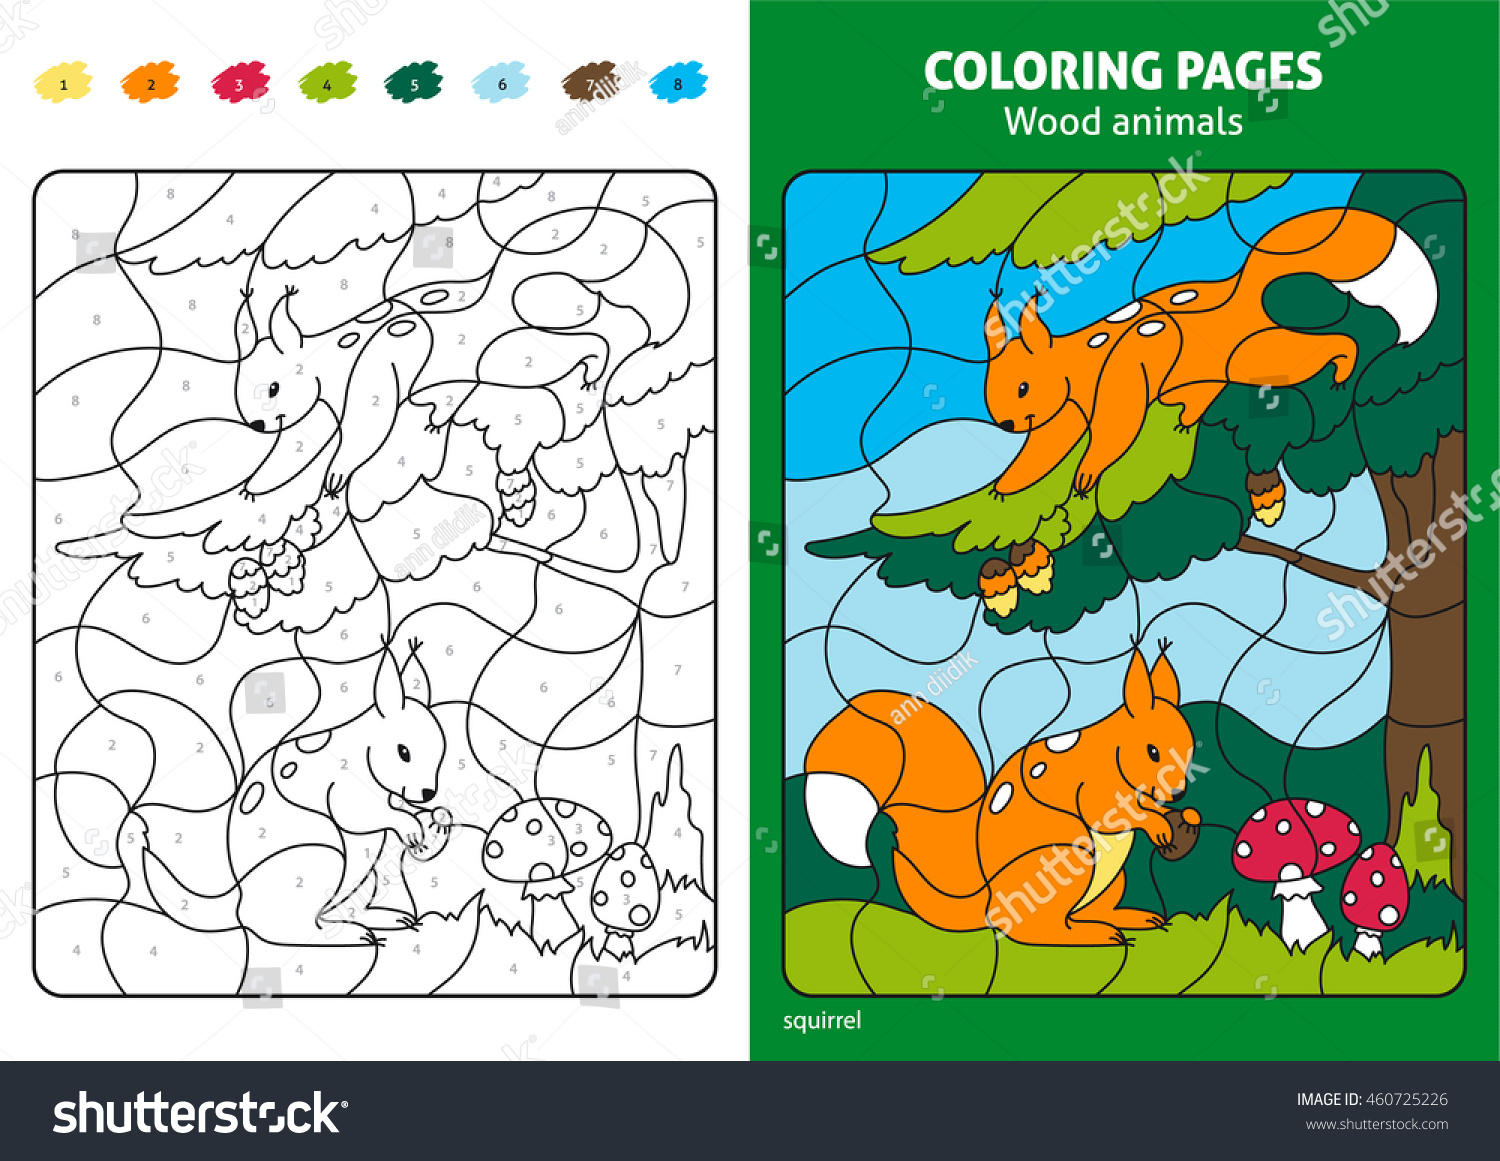 Wood Animals Coloring Page Kids Squirrels Stock Vector